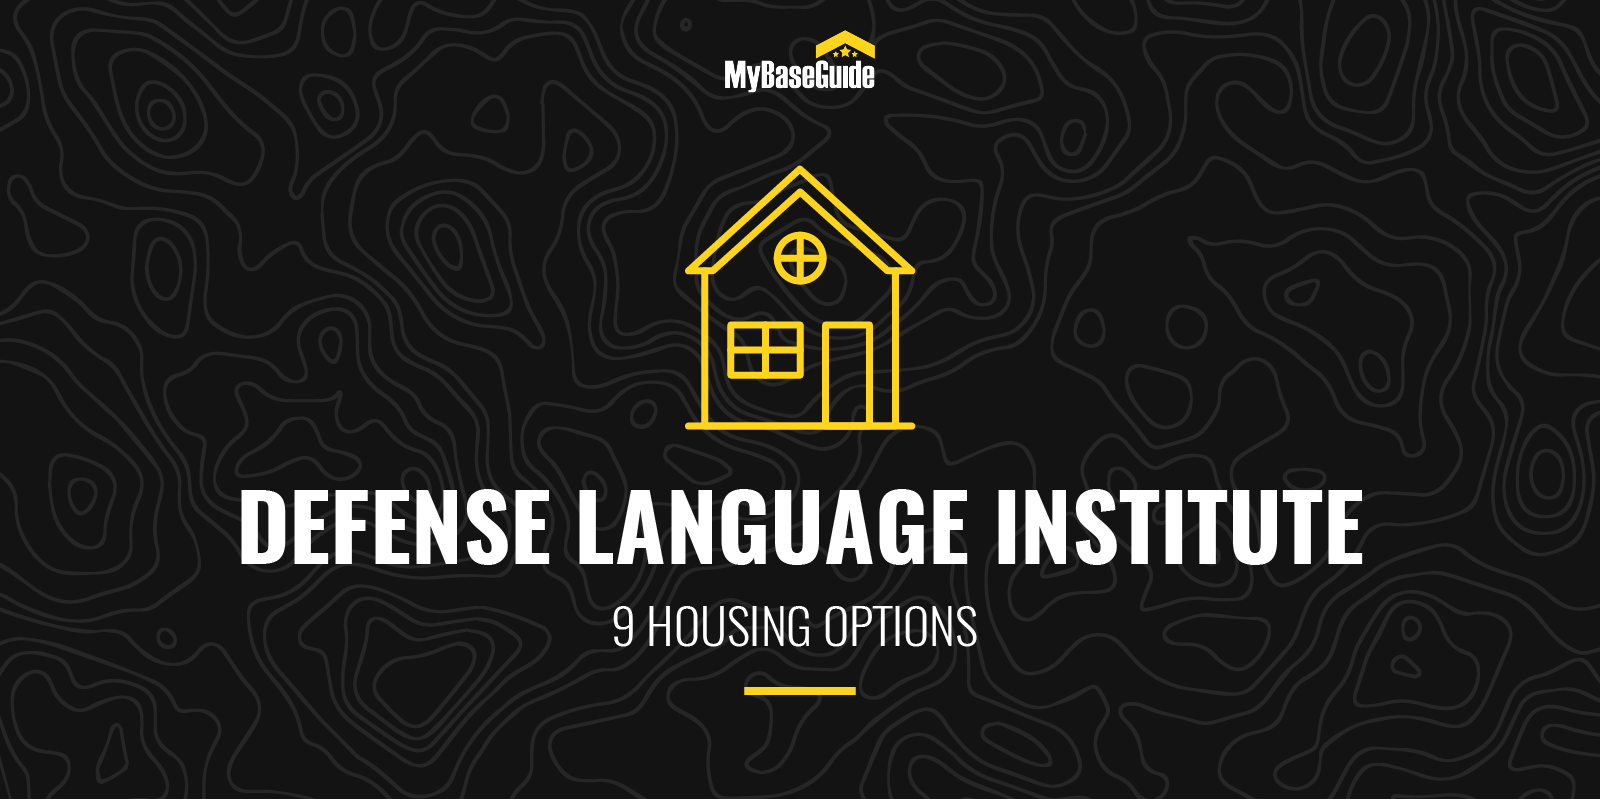 9 Defense Language Institute Housing Options